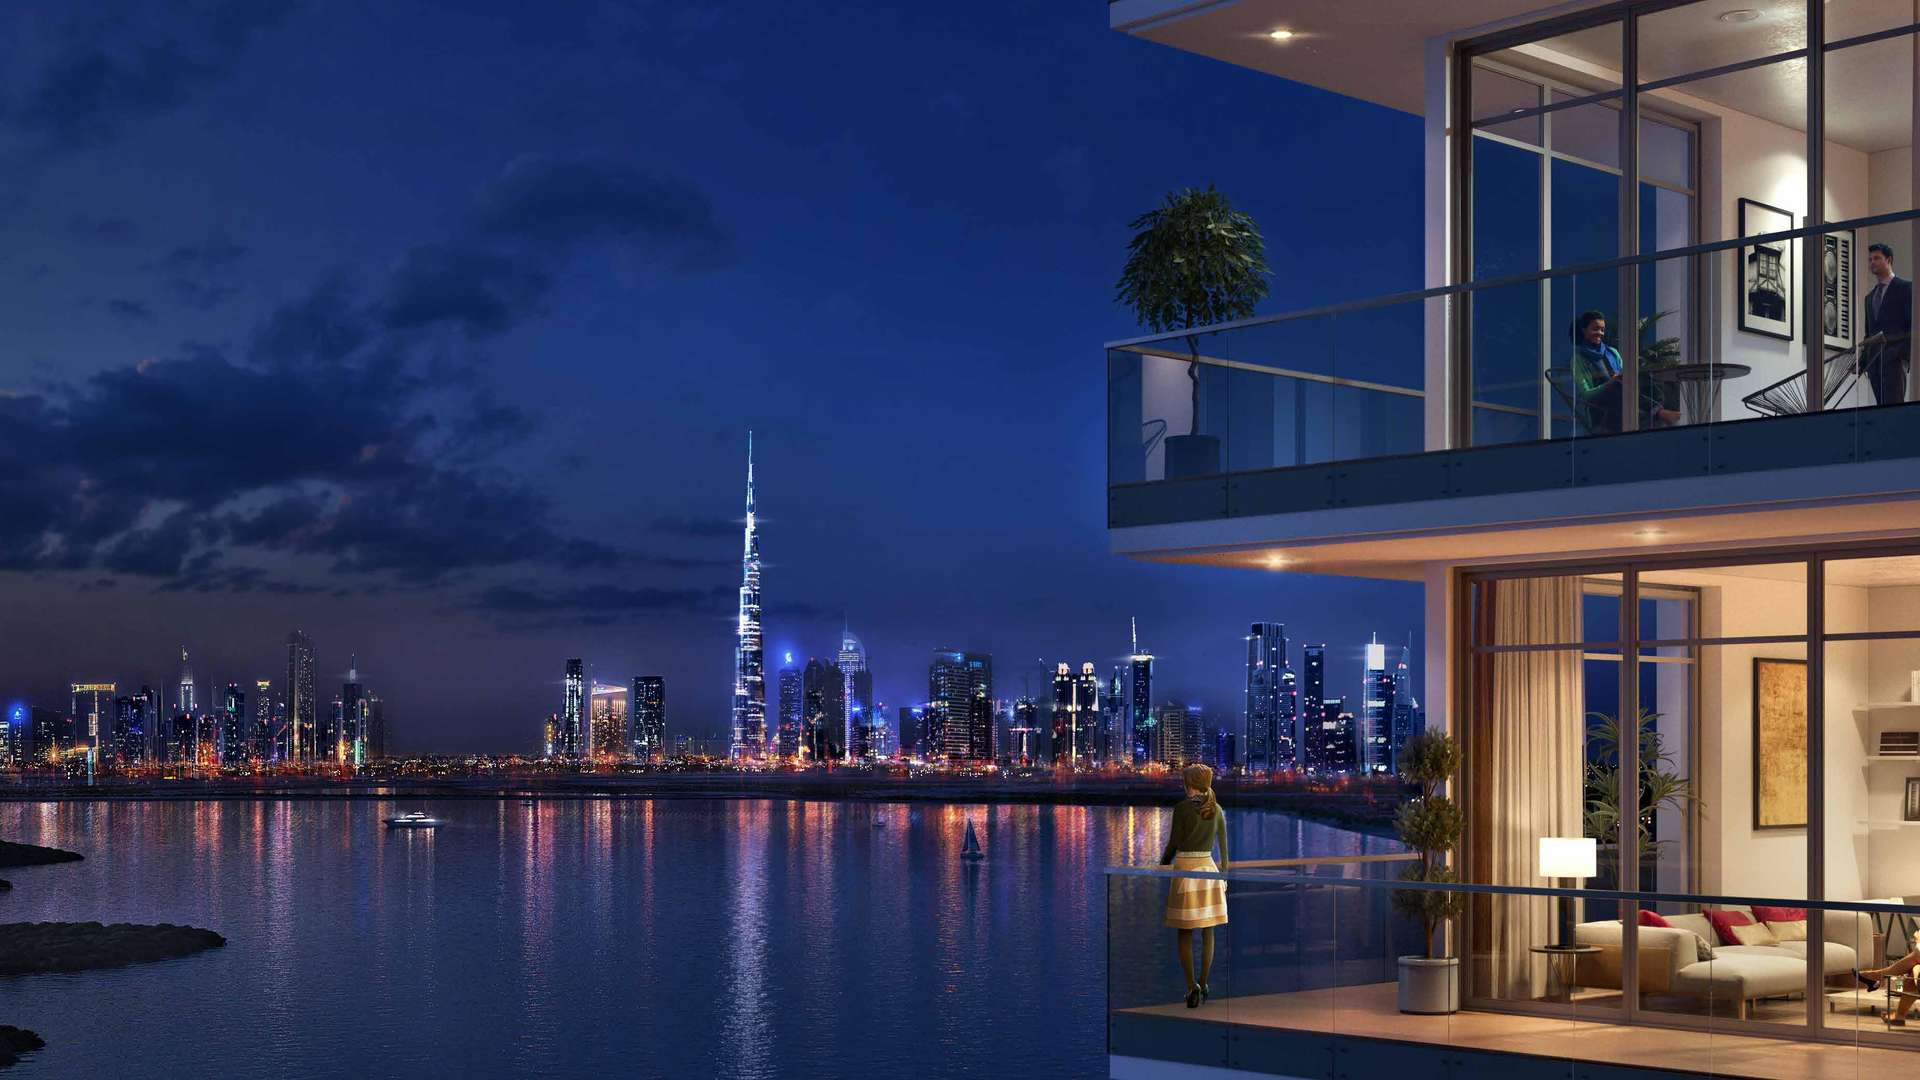 The Cove Waterfront Community Dubai